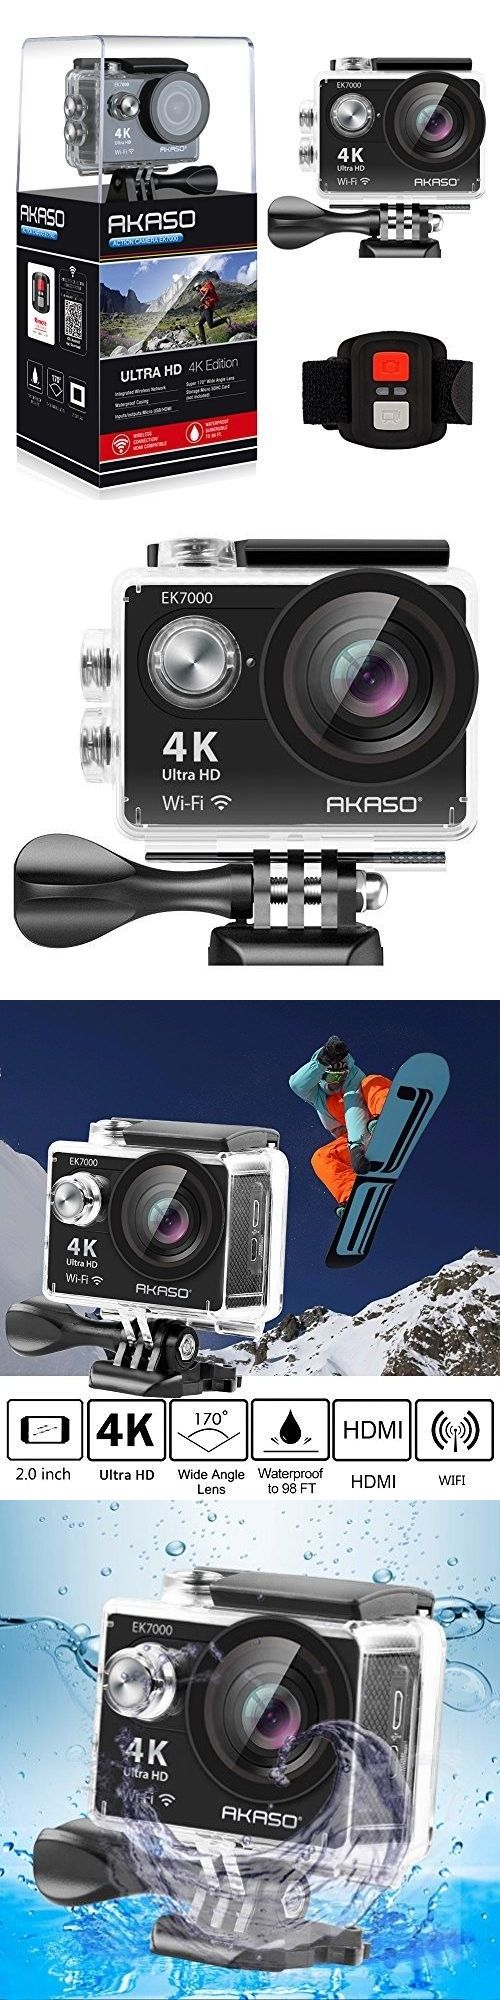 Underwater Cameras 180000: Underwater Video Camera Waterproof Full Hd Sports Action Dv Camcorder Fishing -> BUY IT NOW ONLY: $126.08 on eBay!